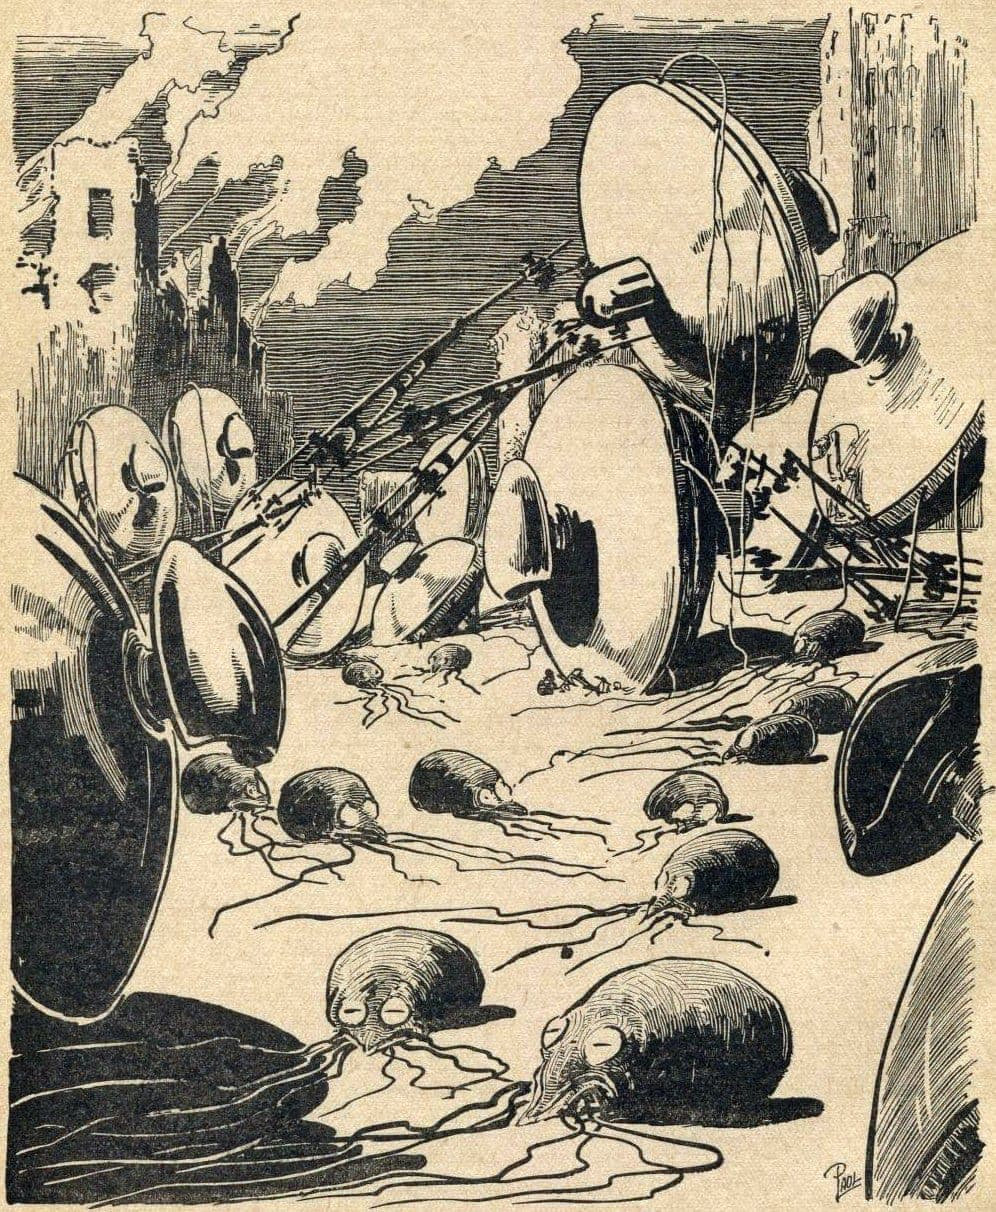 Martians from Mars - War of the Worlds - vintage art (2)